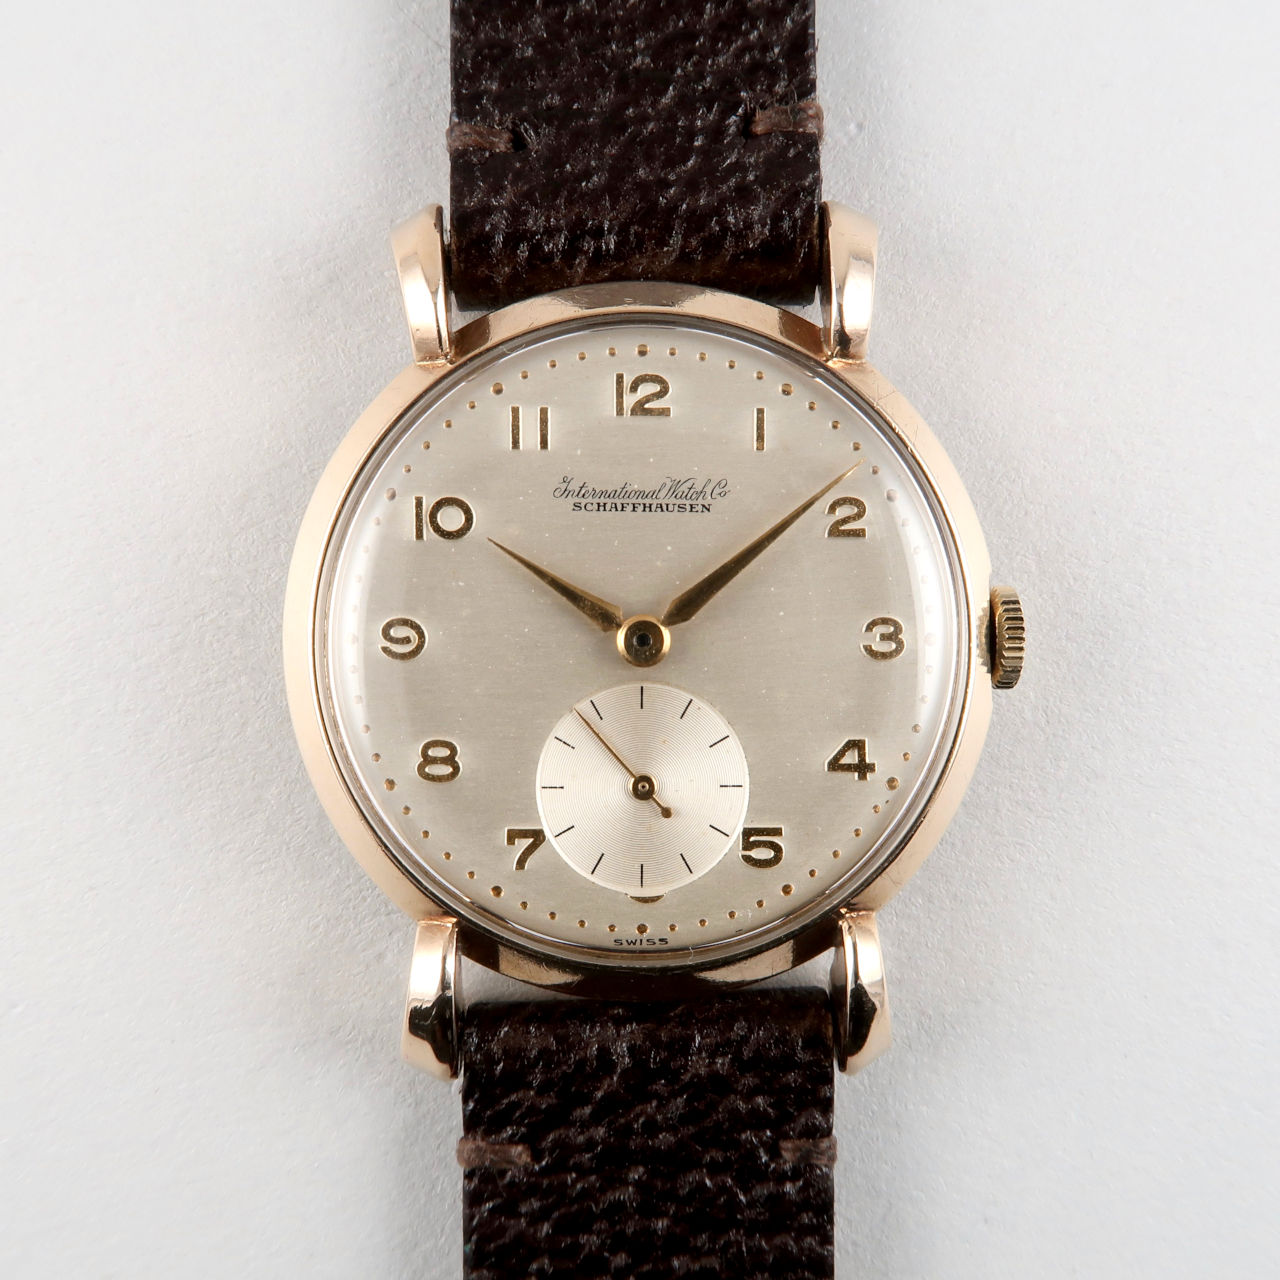 International Watch Co. Cal. 62 hallmarked 1954